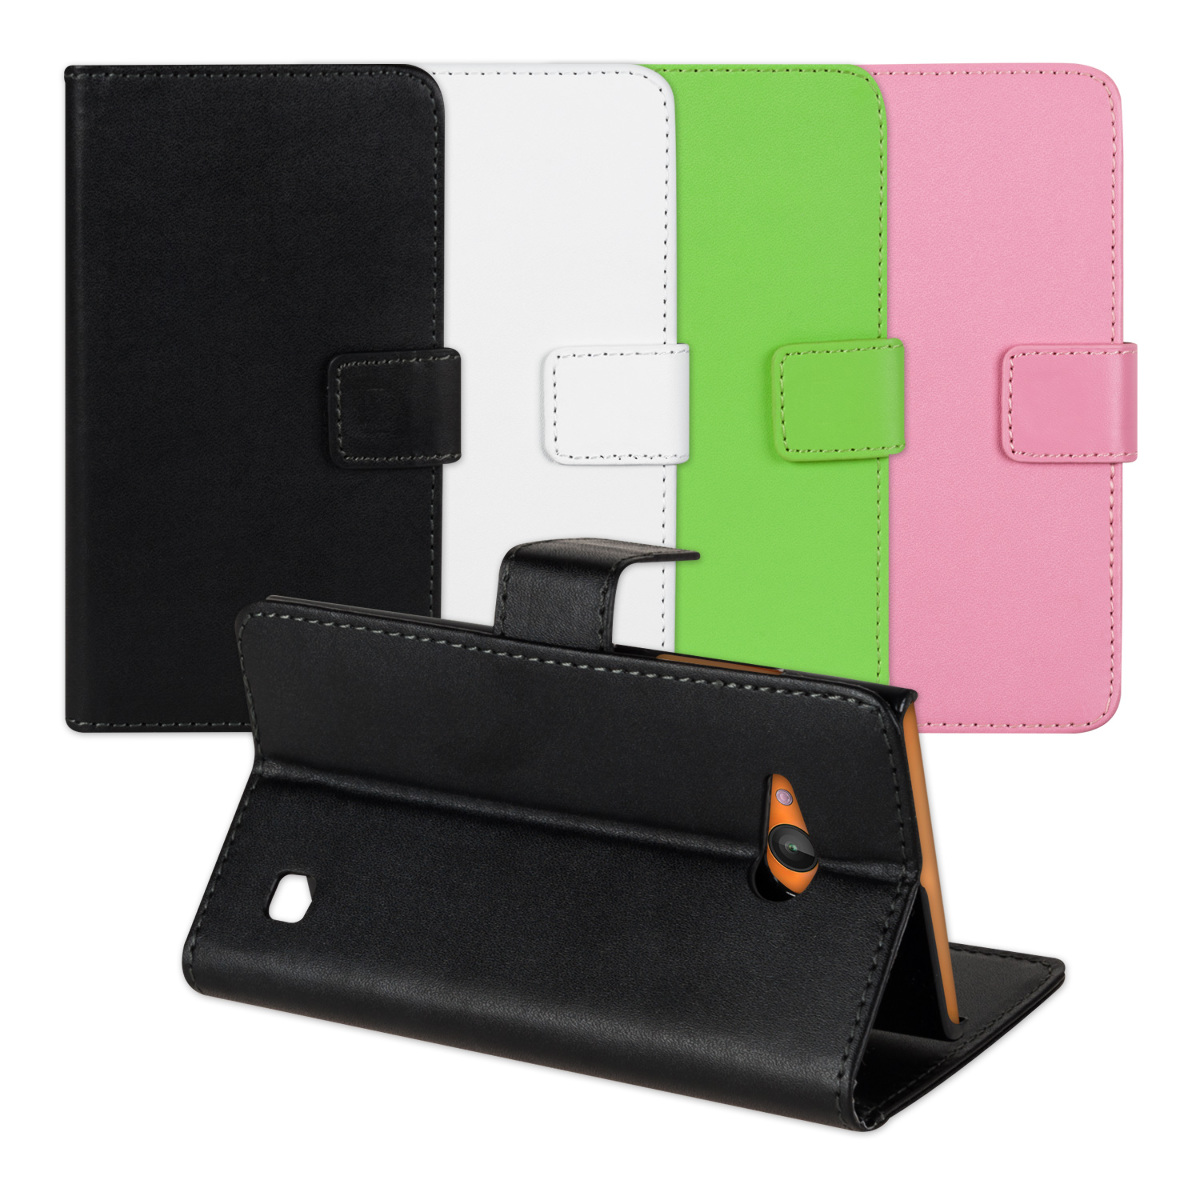 save off a457e 87f61 Details about PU Leather Wallet Case Flip Cover for Nokia Lumia 730 735